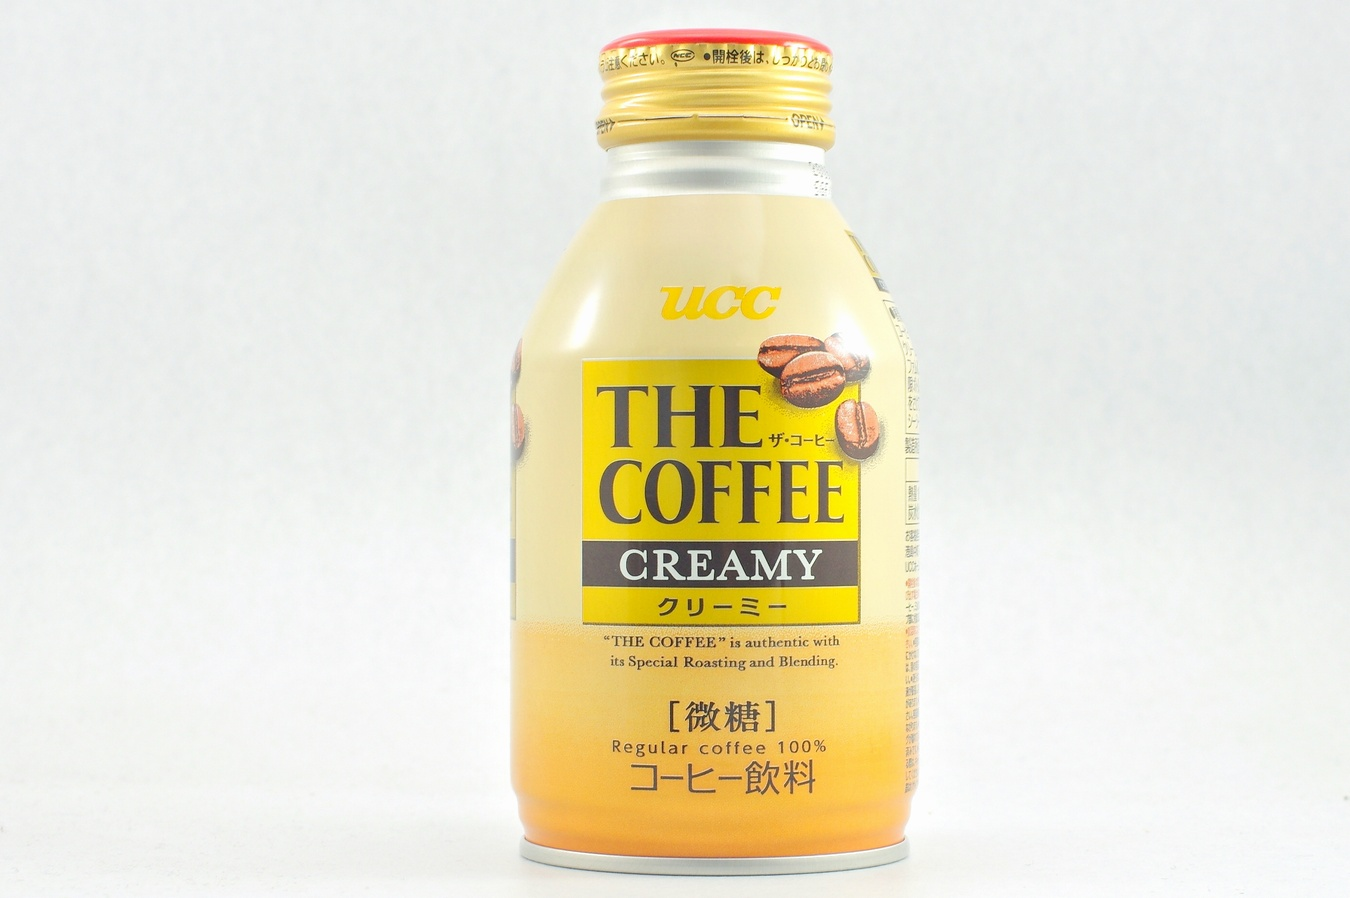 UCC THE COFFEE クリーミー 2015年3月